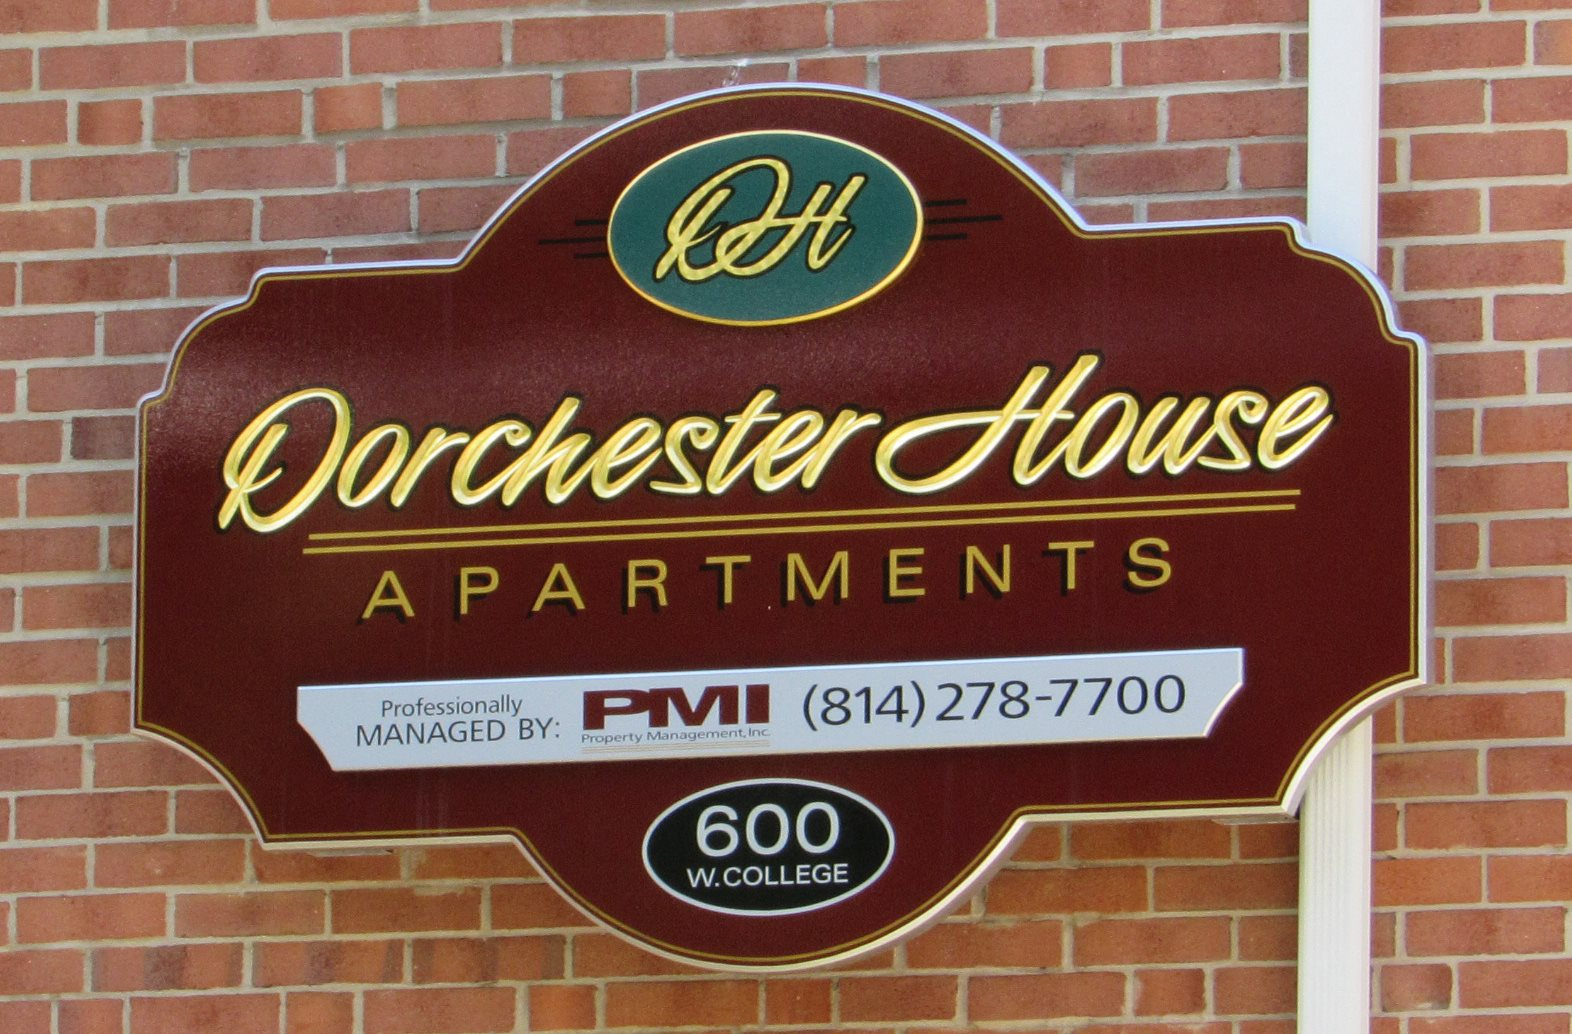 Cheap Student Housing in State College, PA | Dorchester House Apartments | Property Management, Inc.